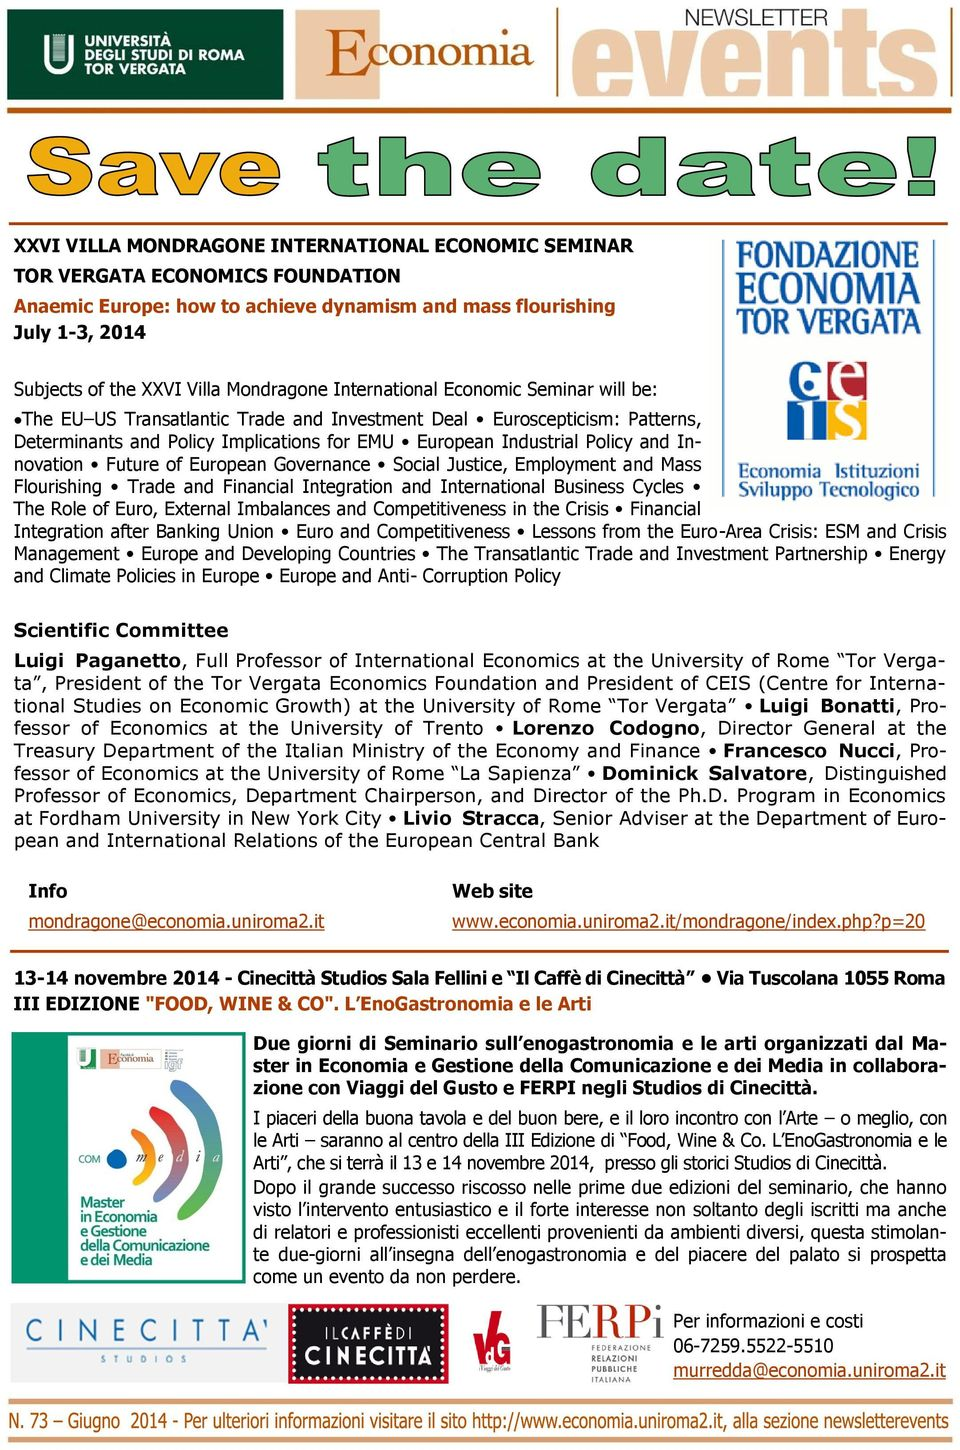 Innovation Future of European Governance Social Justice, Employment and Mass Flourishing Trade and Financial Integration and International Business Cycles The Role of Euro, External Imbalances and